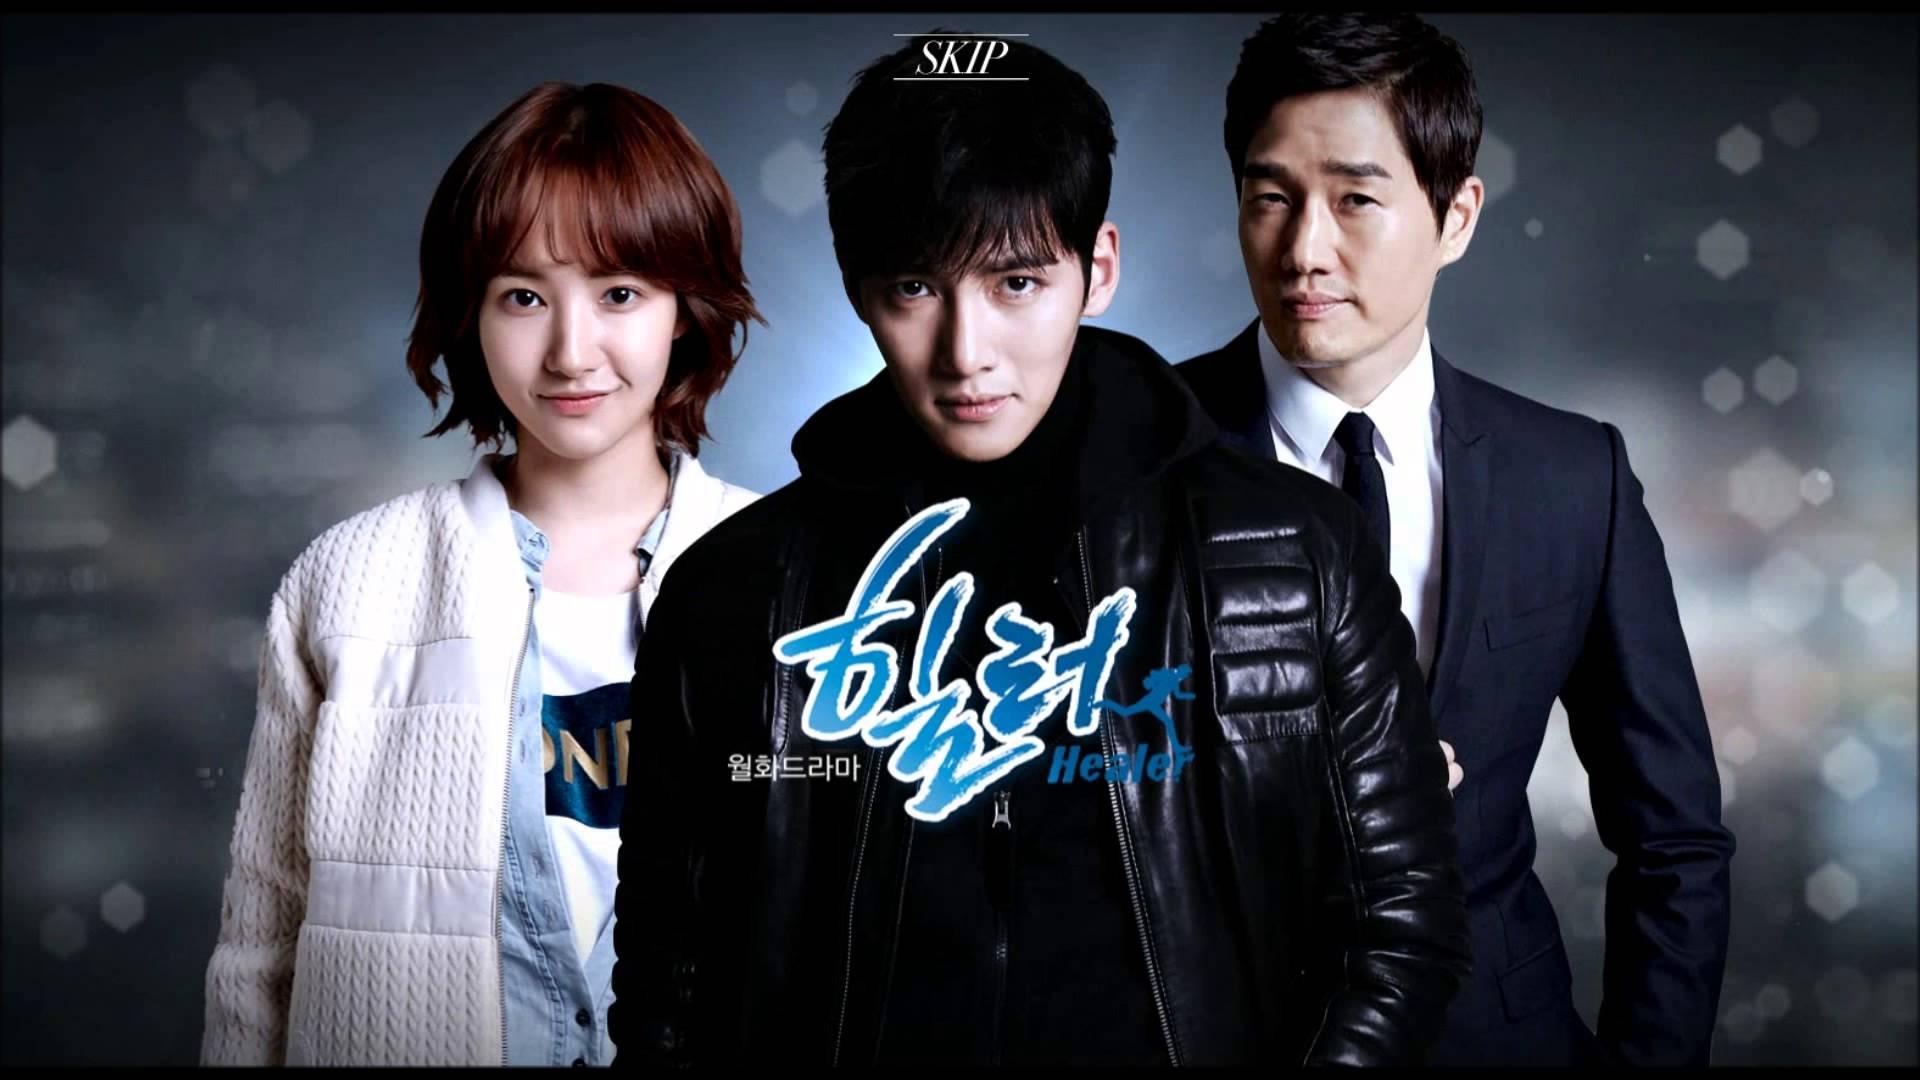 Healer Drama Korean Dramas Rock Love Poster Film Indonesia